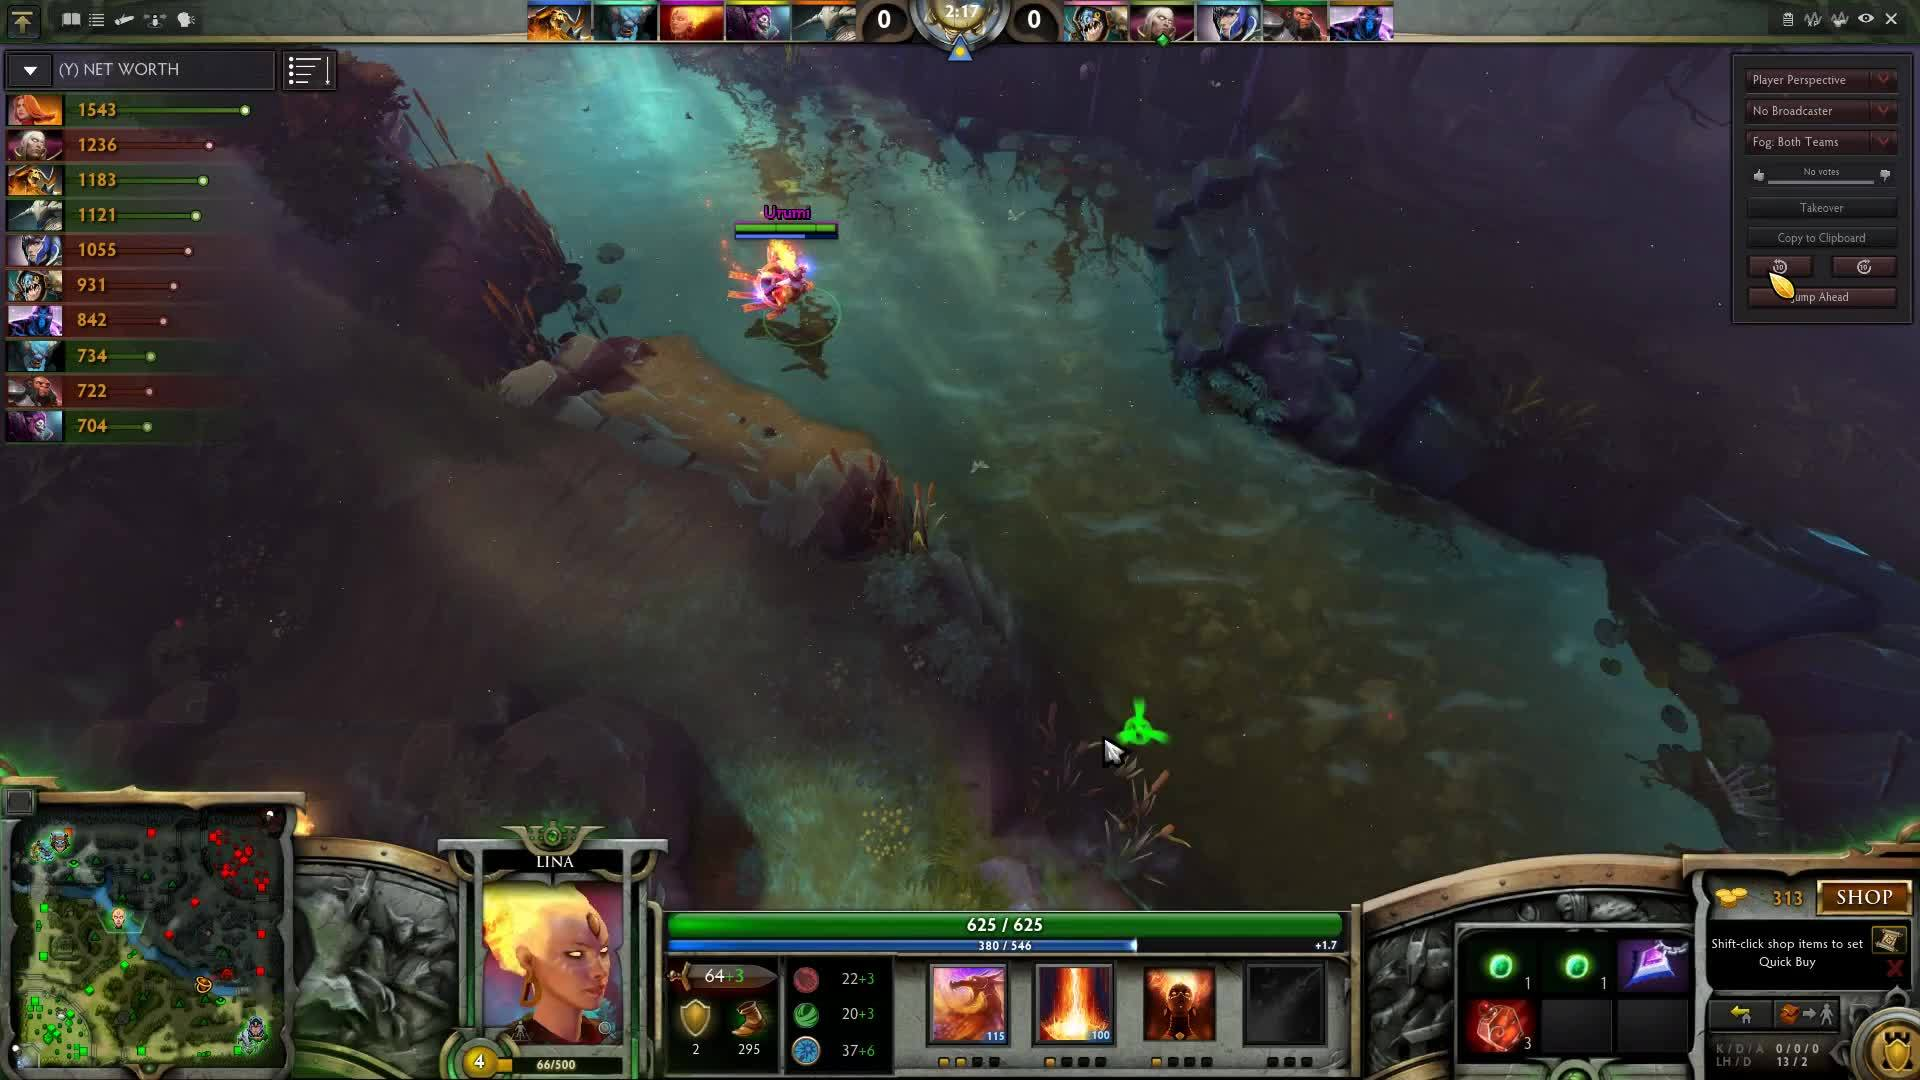 dota 2 (video game), Can't outrun a wildfire! GIFs